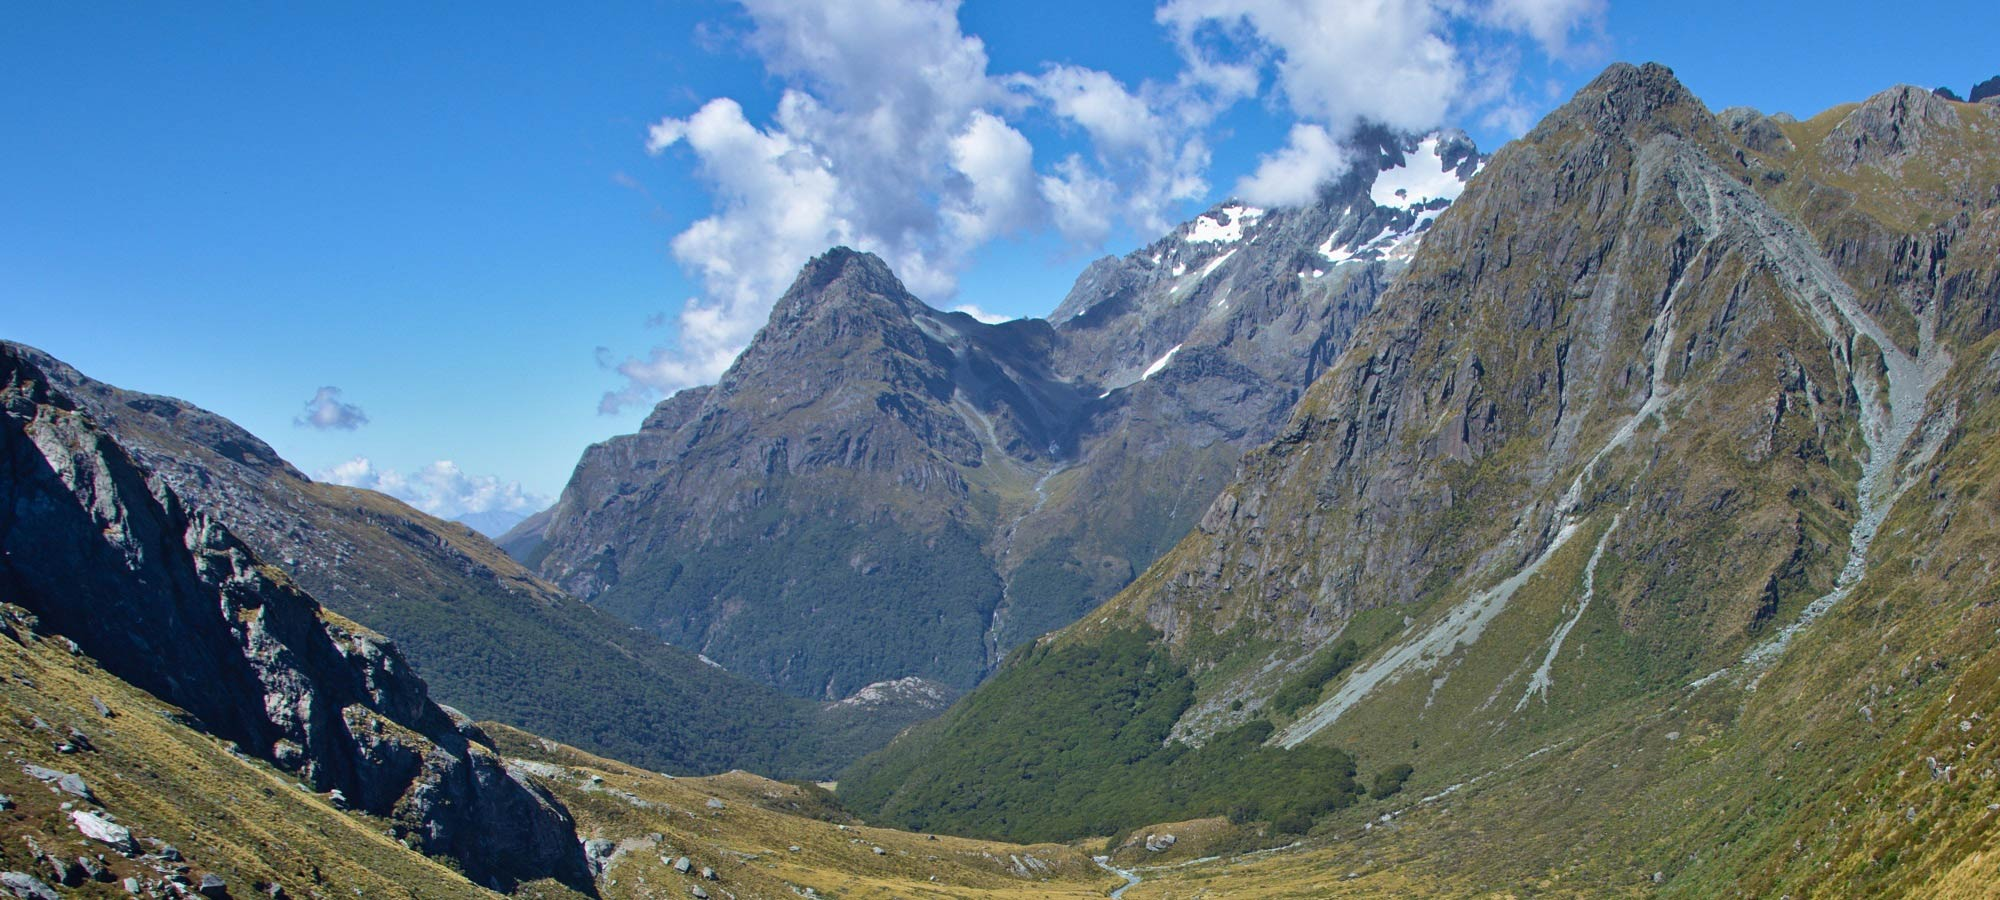 Mount Aspiring National Park, by Tomas Sobek, used under Creative Commons CC BY 2.0